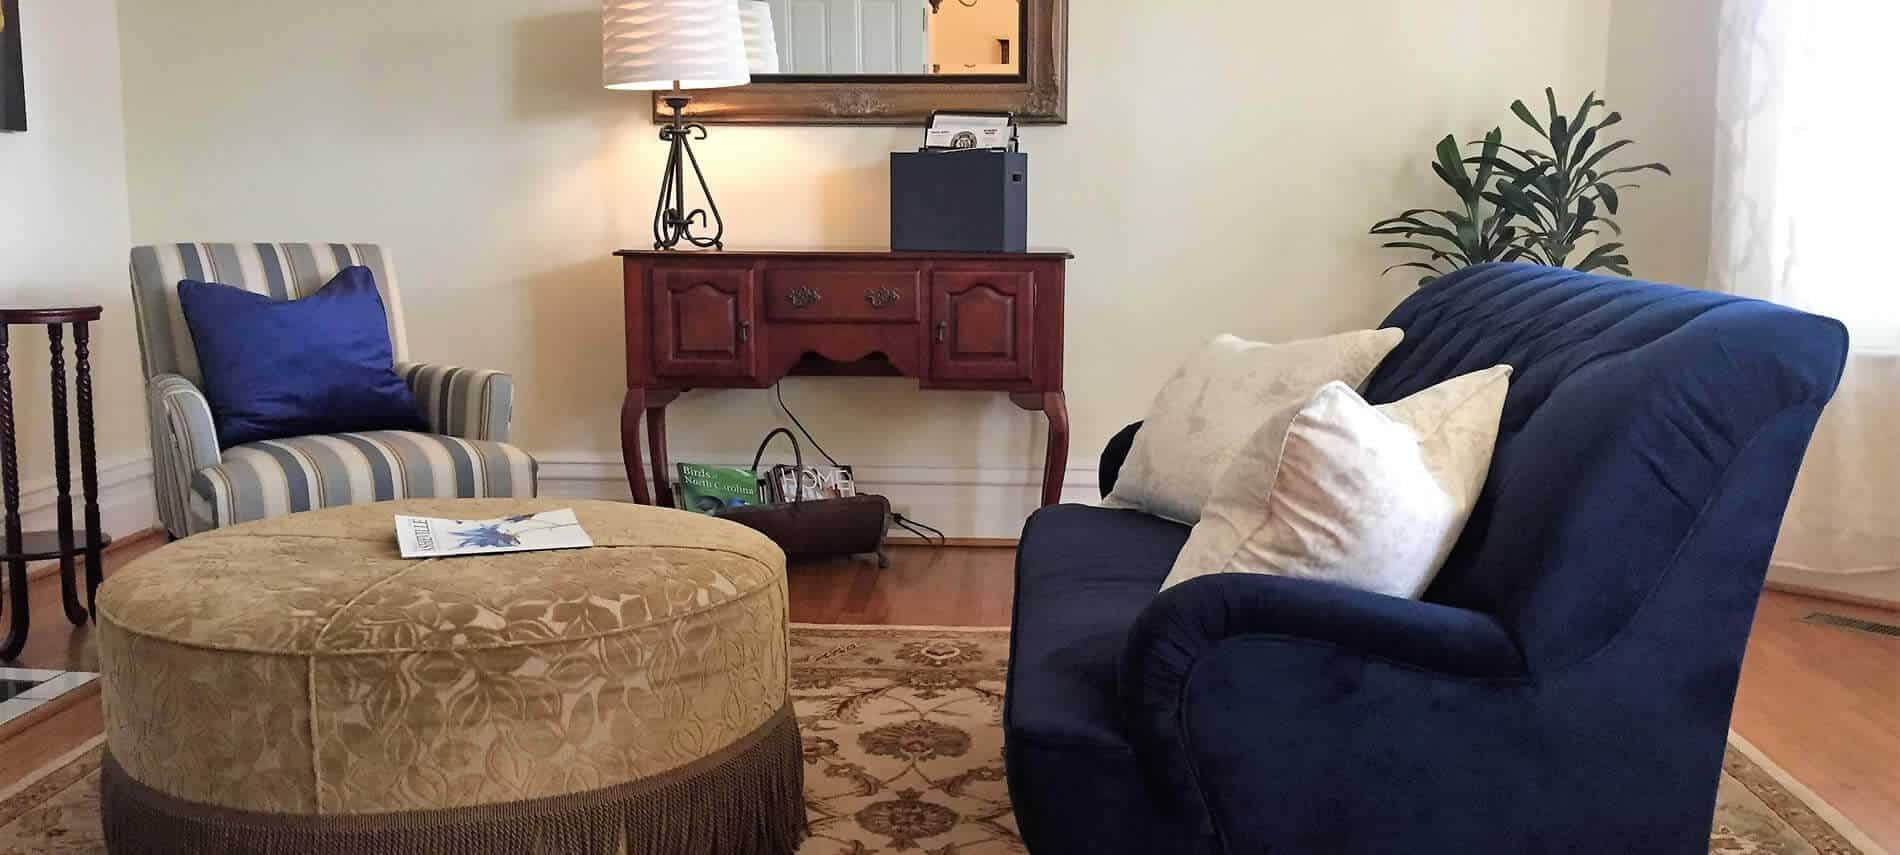 Sitting area with hardwood floors, blue and beige furniture, gold ottoman and wood console table with lamp and mirror